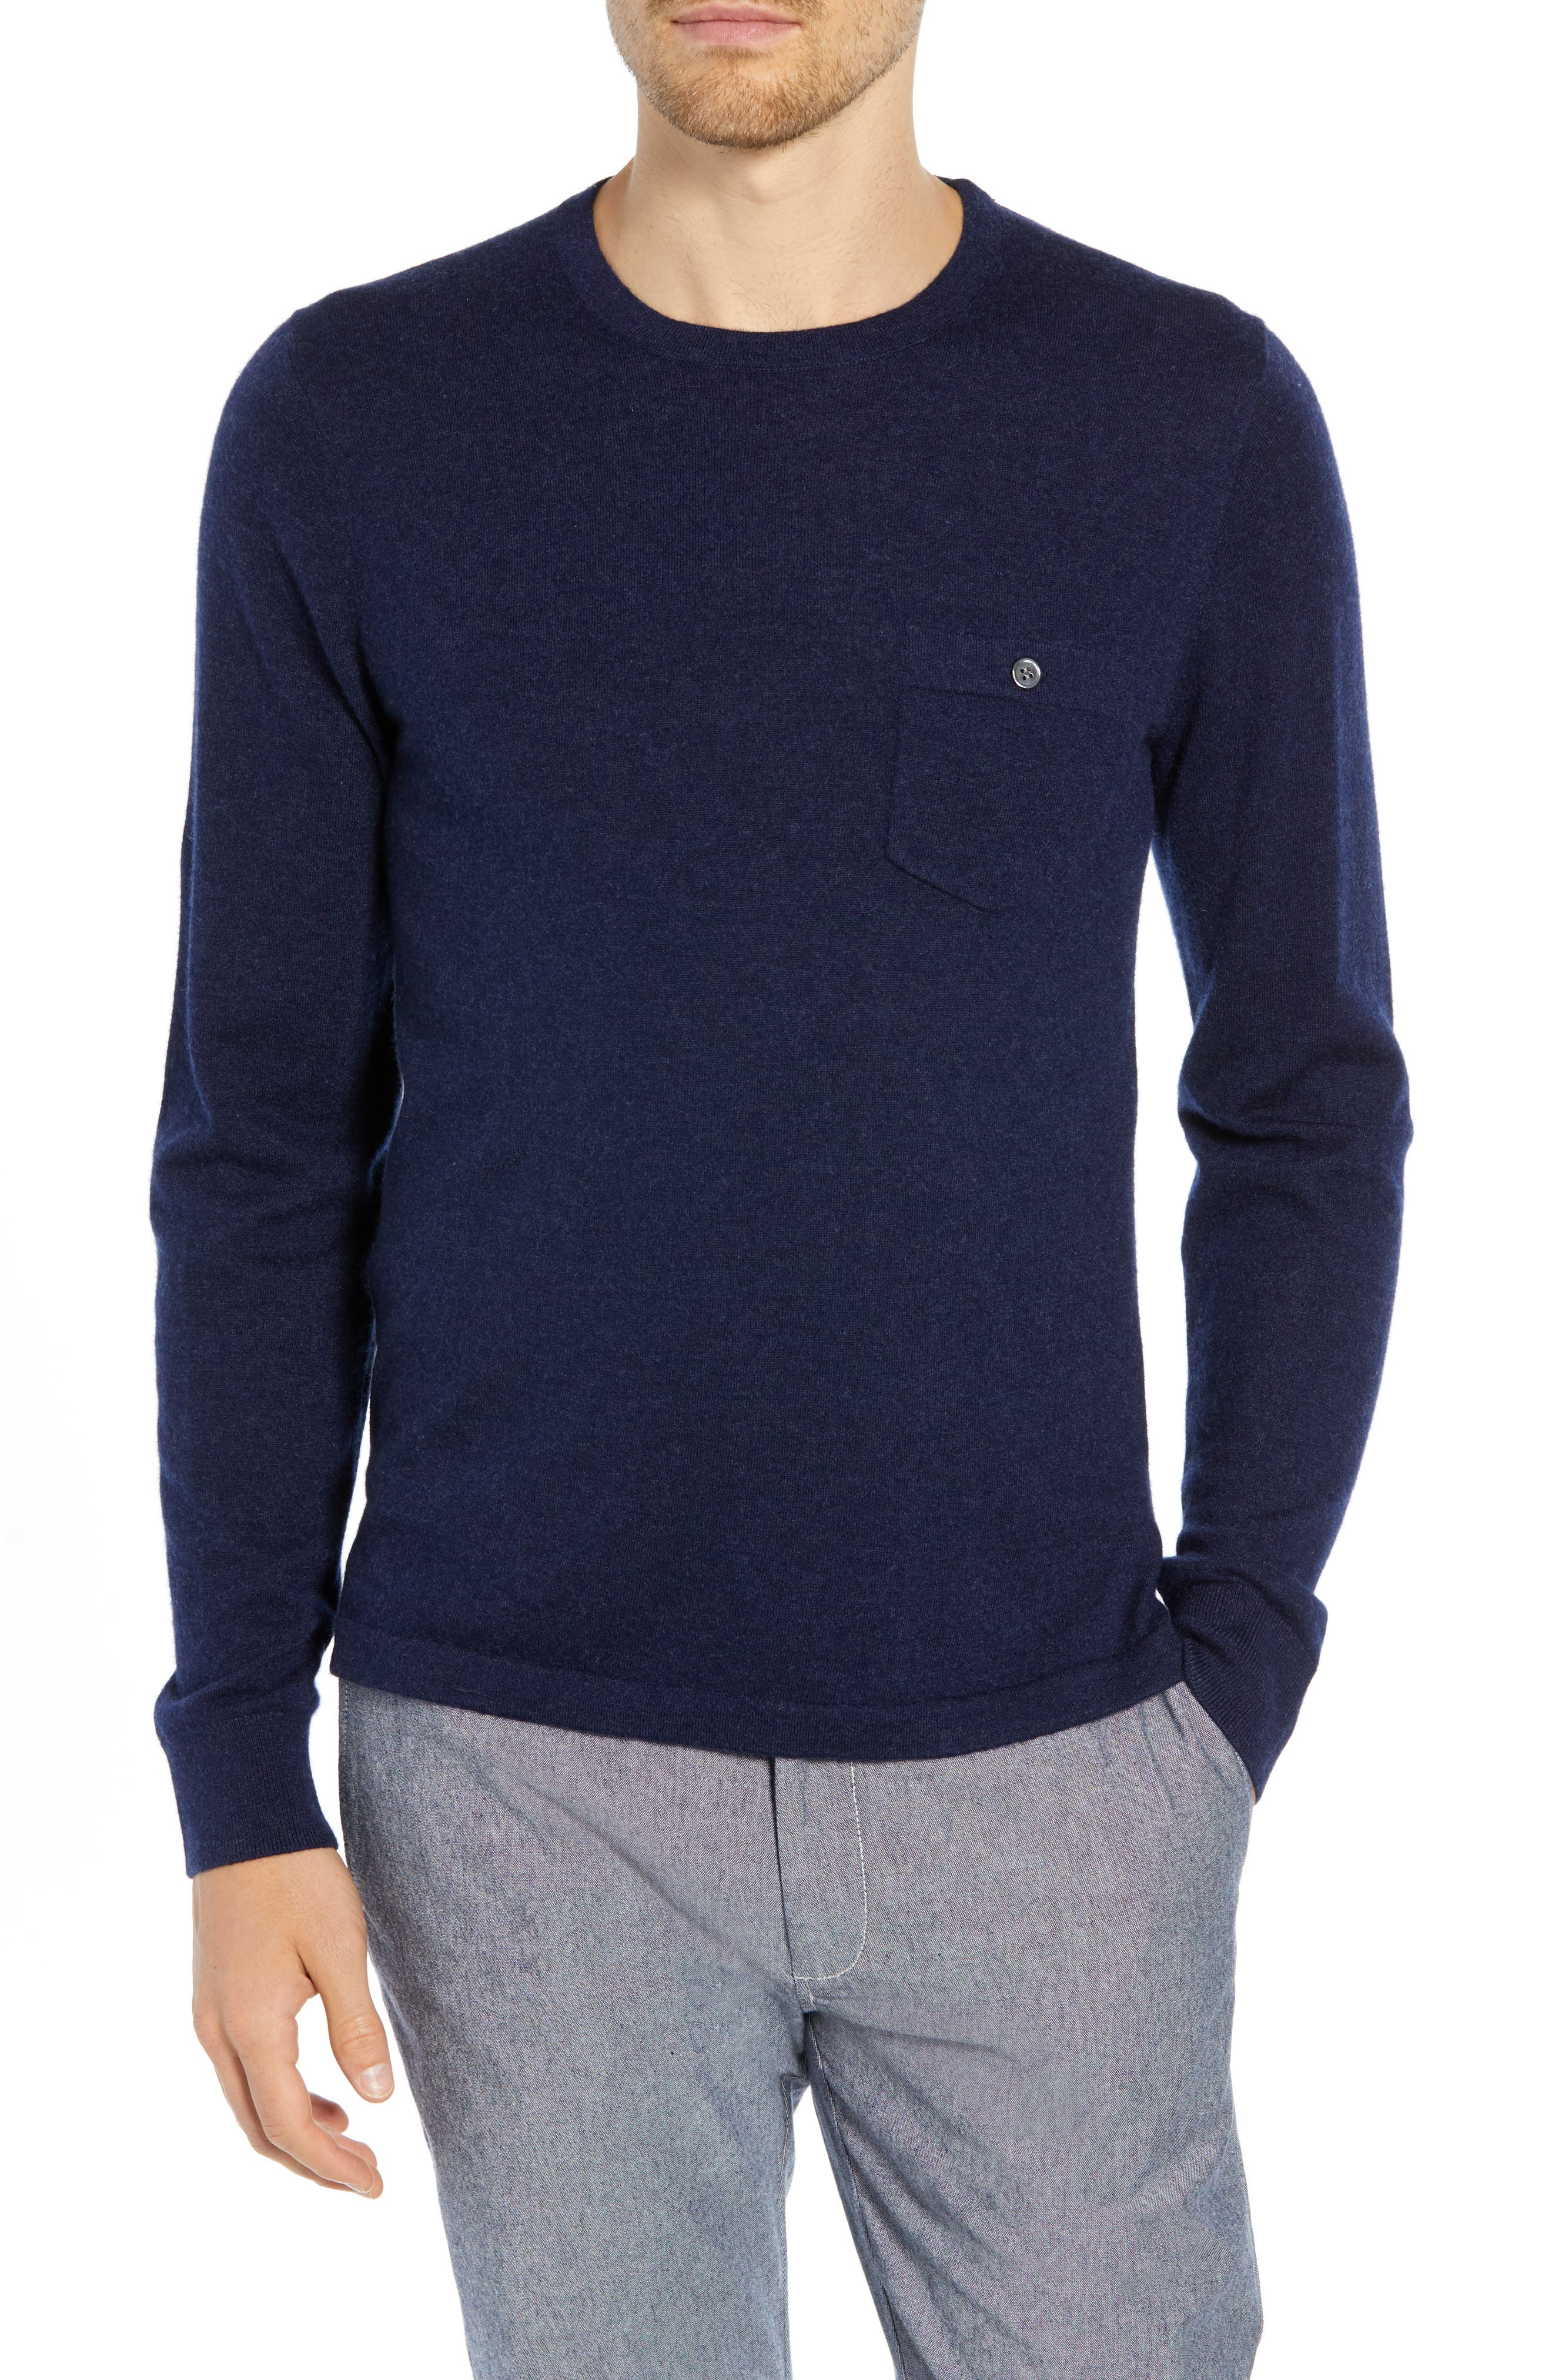 Cashmere Sweater,                         Main,                         color, NAVY/ GREY